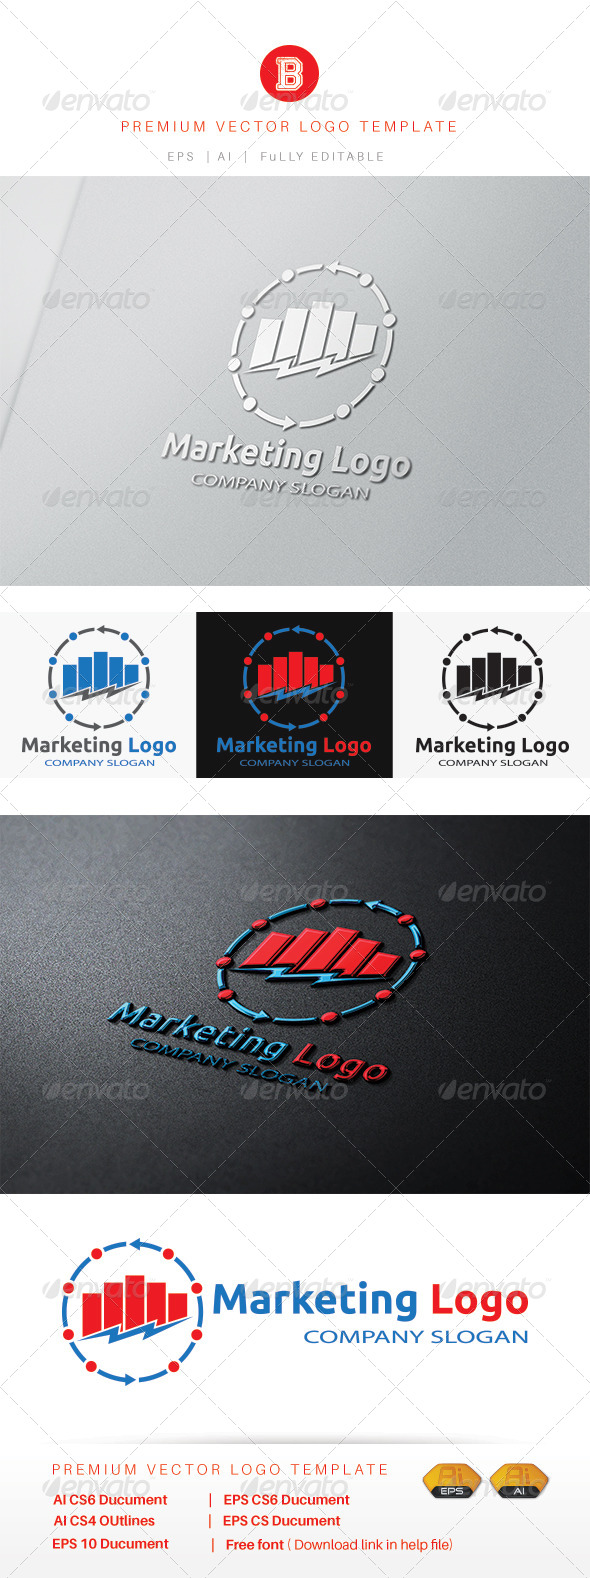 GraphicRiver Marketing Logo 8537626